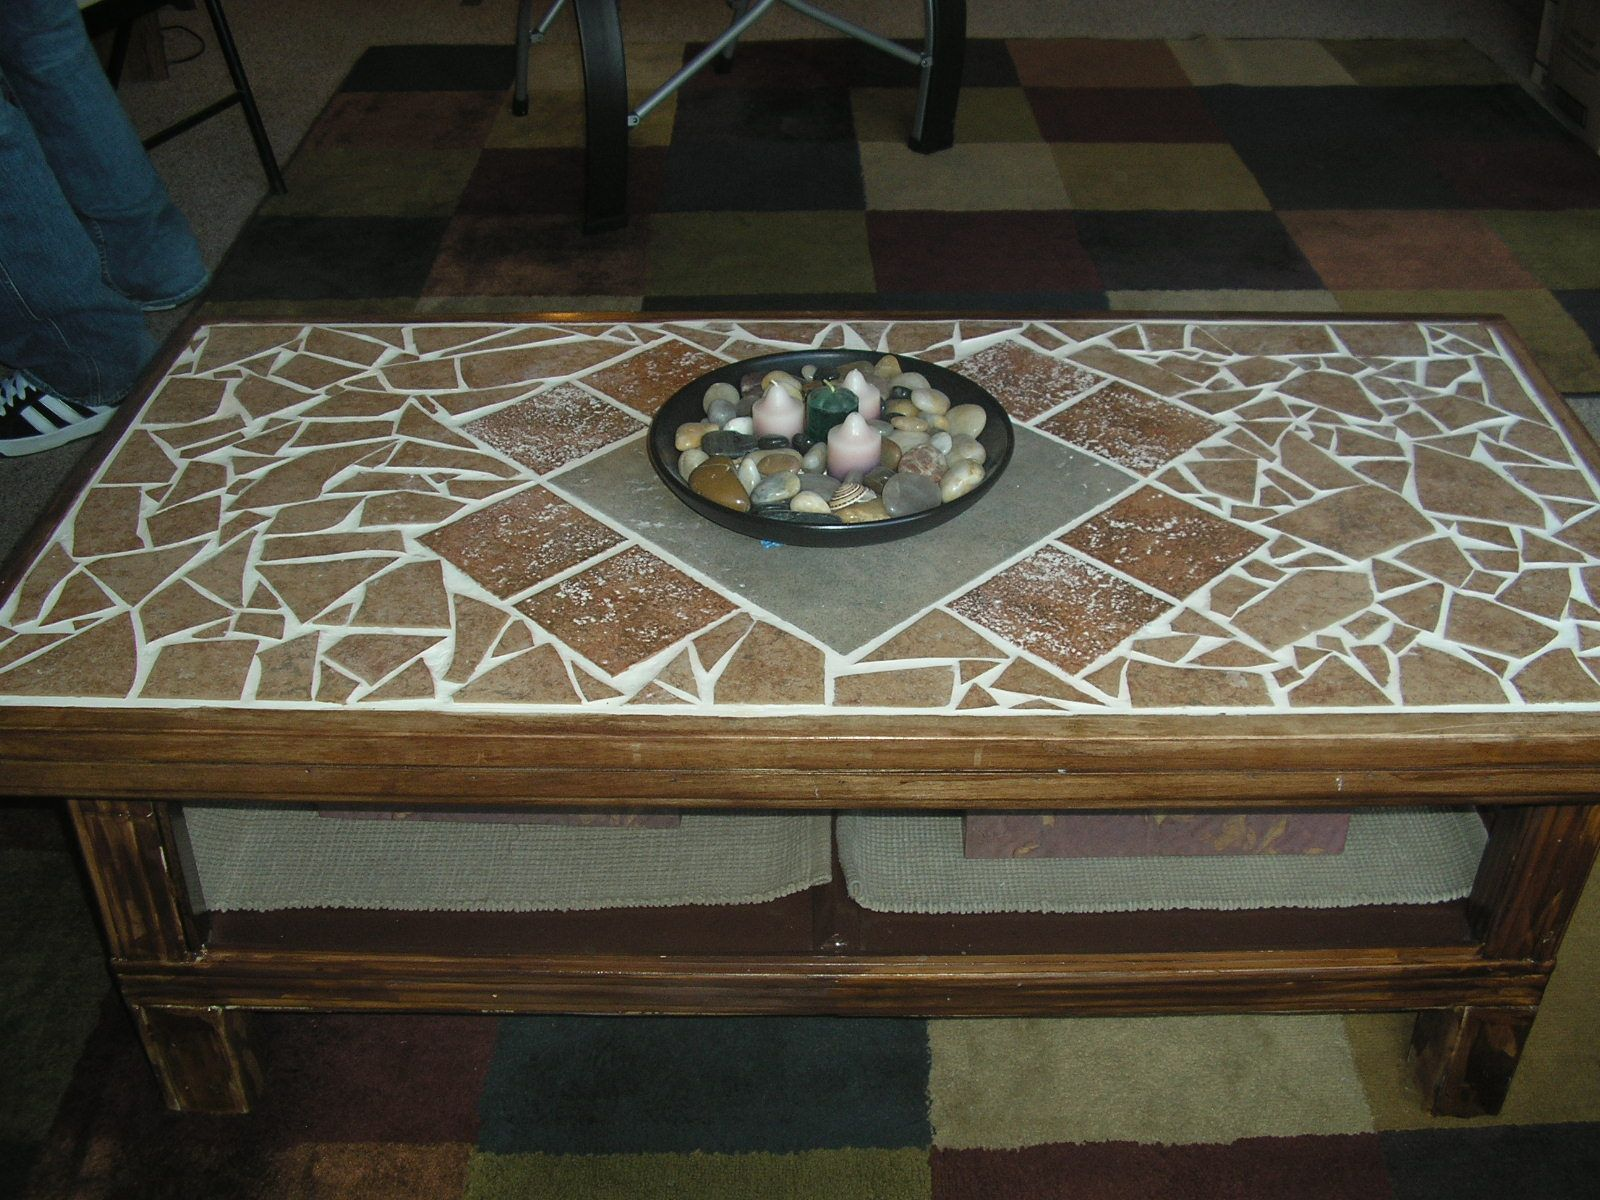 For my $3 garage sale find :) redoing my coffee table top with tile or